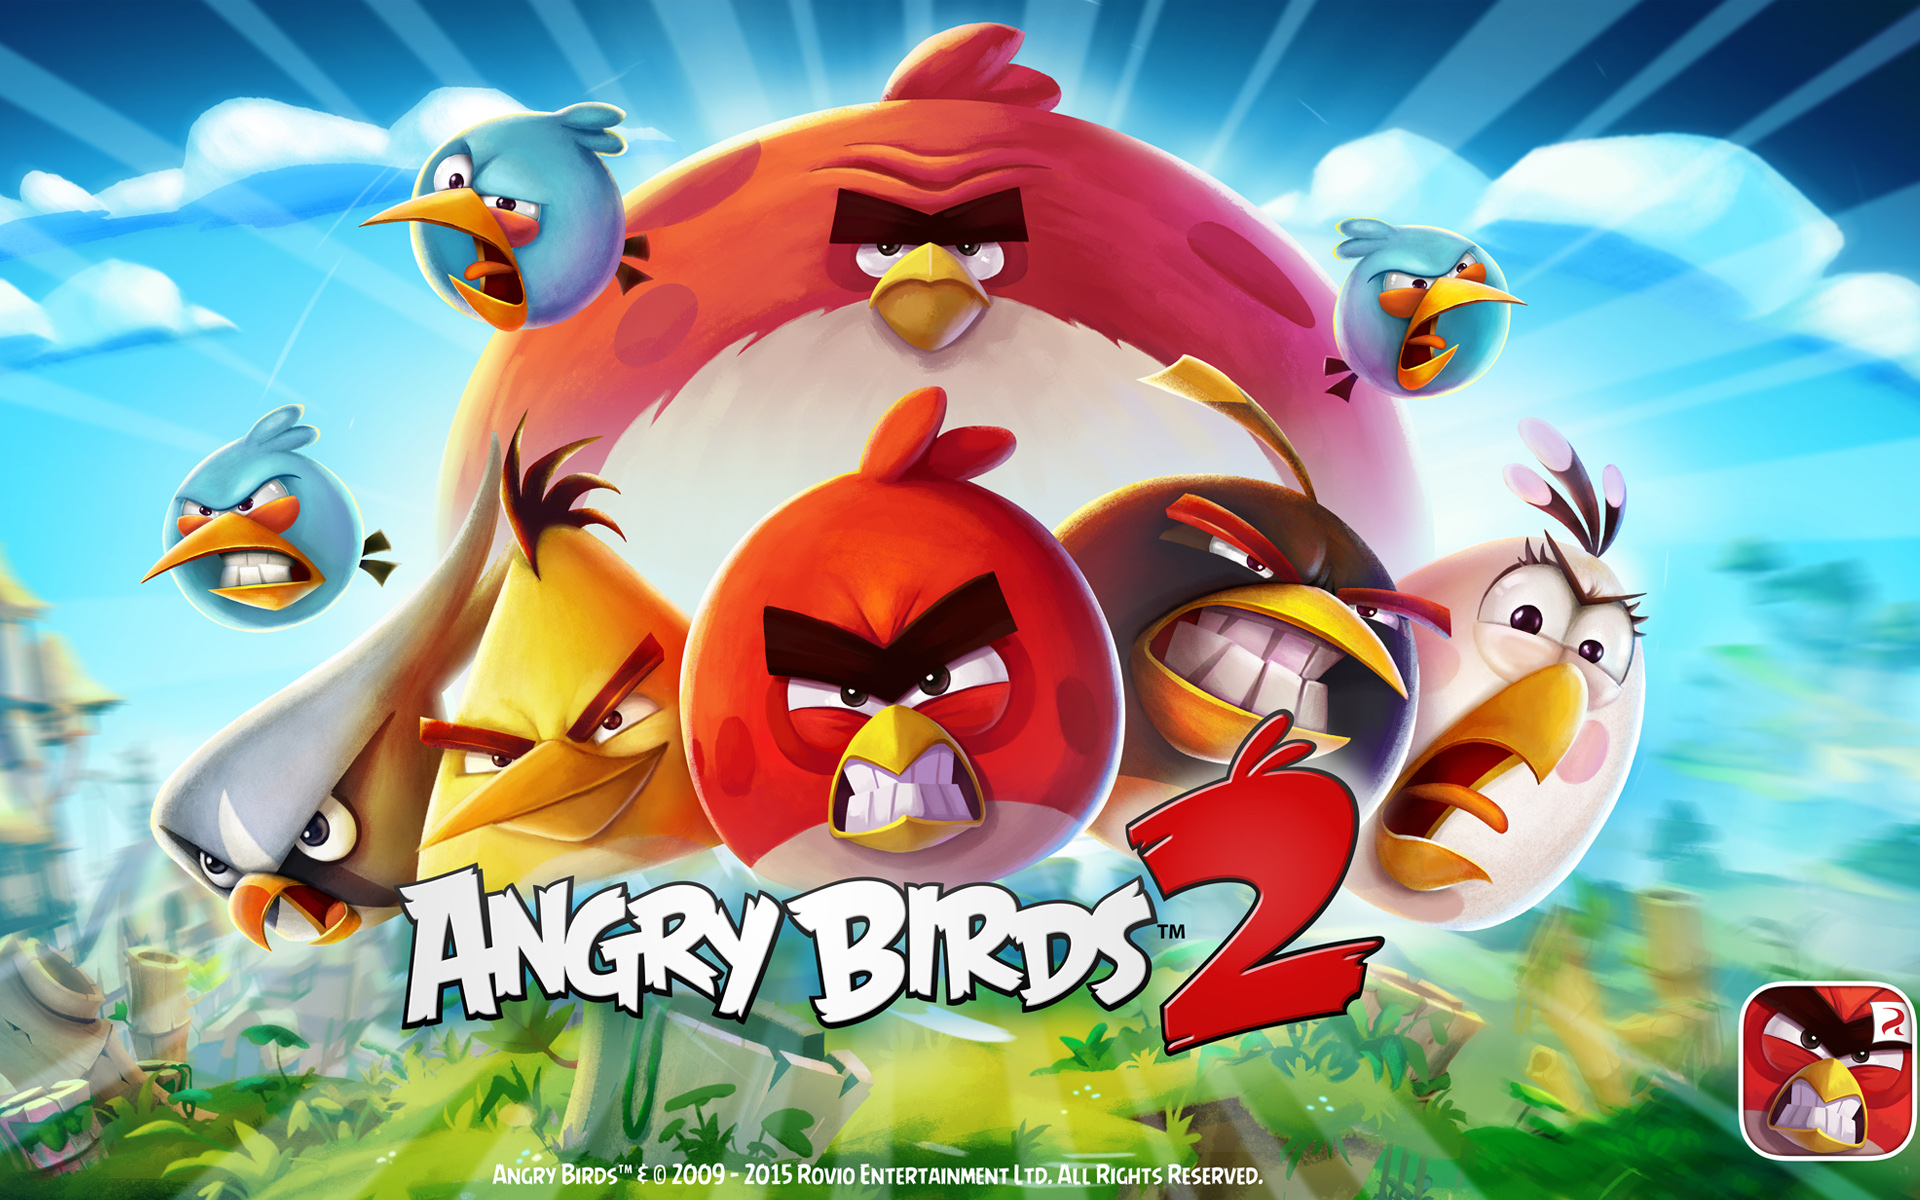 Free download Angry Birds 2 Wallpapers HD Wallpapers